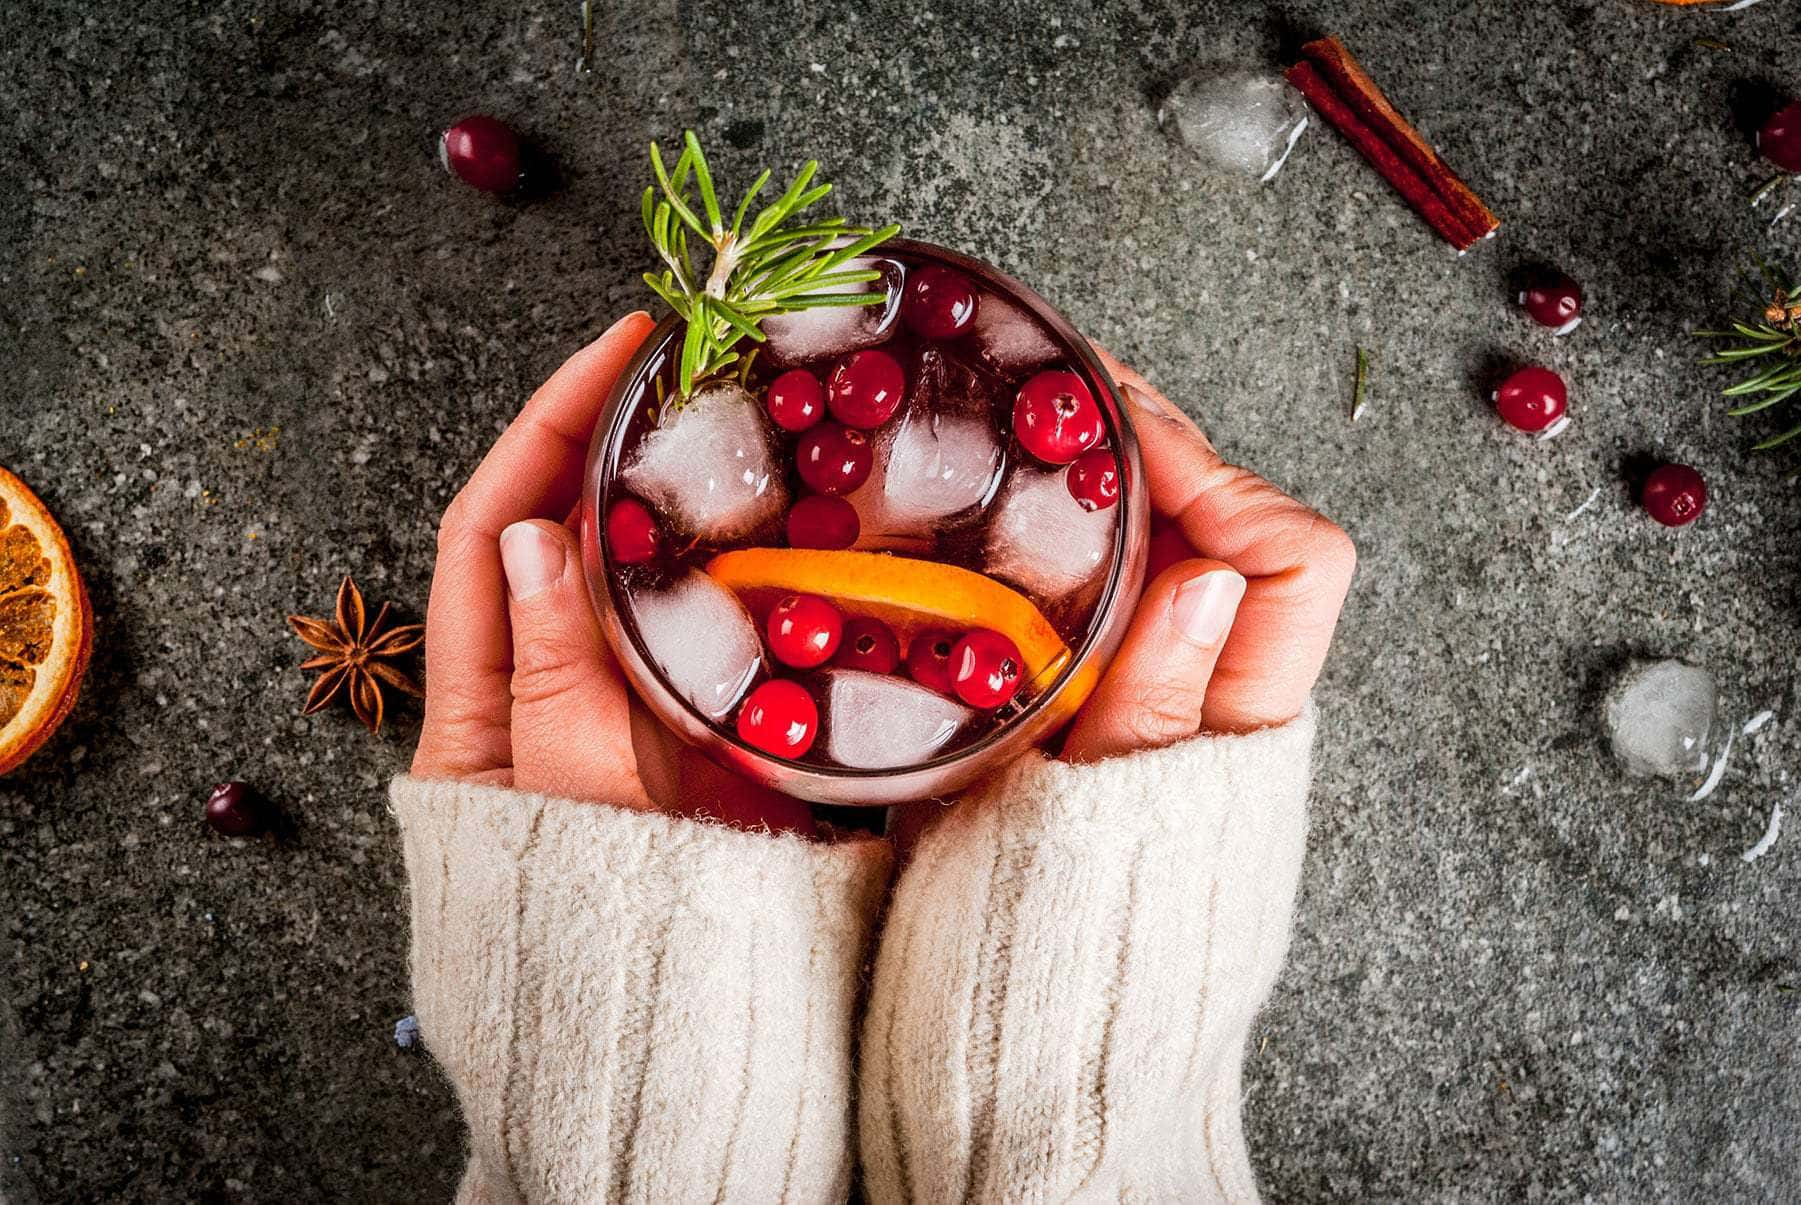 Top view of two hands holding a festive christmas cocktail garnished with cranberries, an orange slice, and a rosemary sprig.